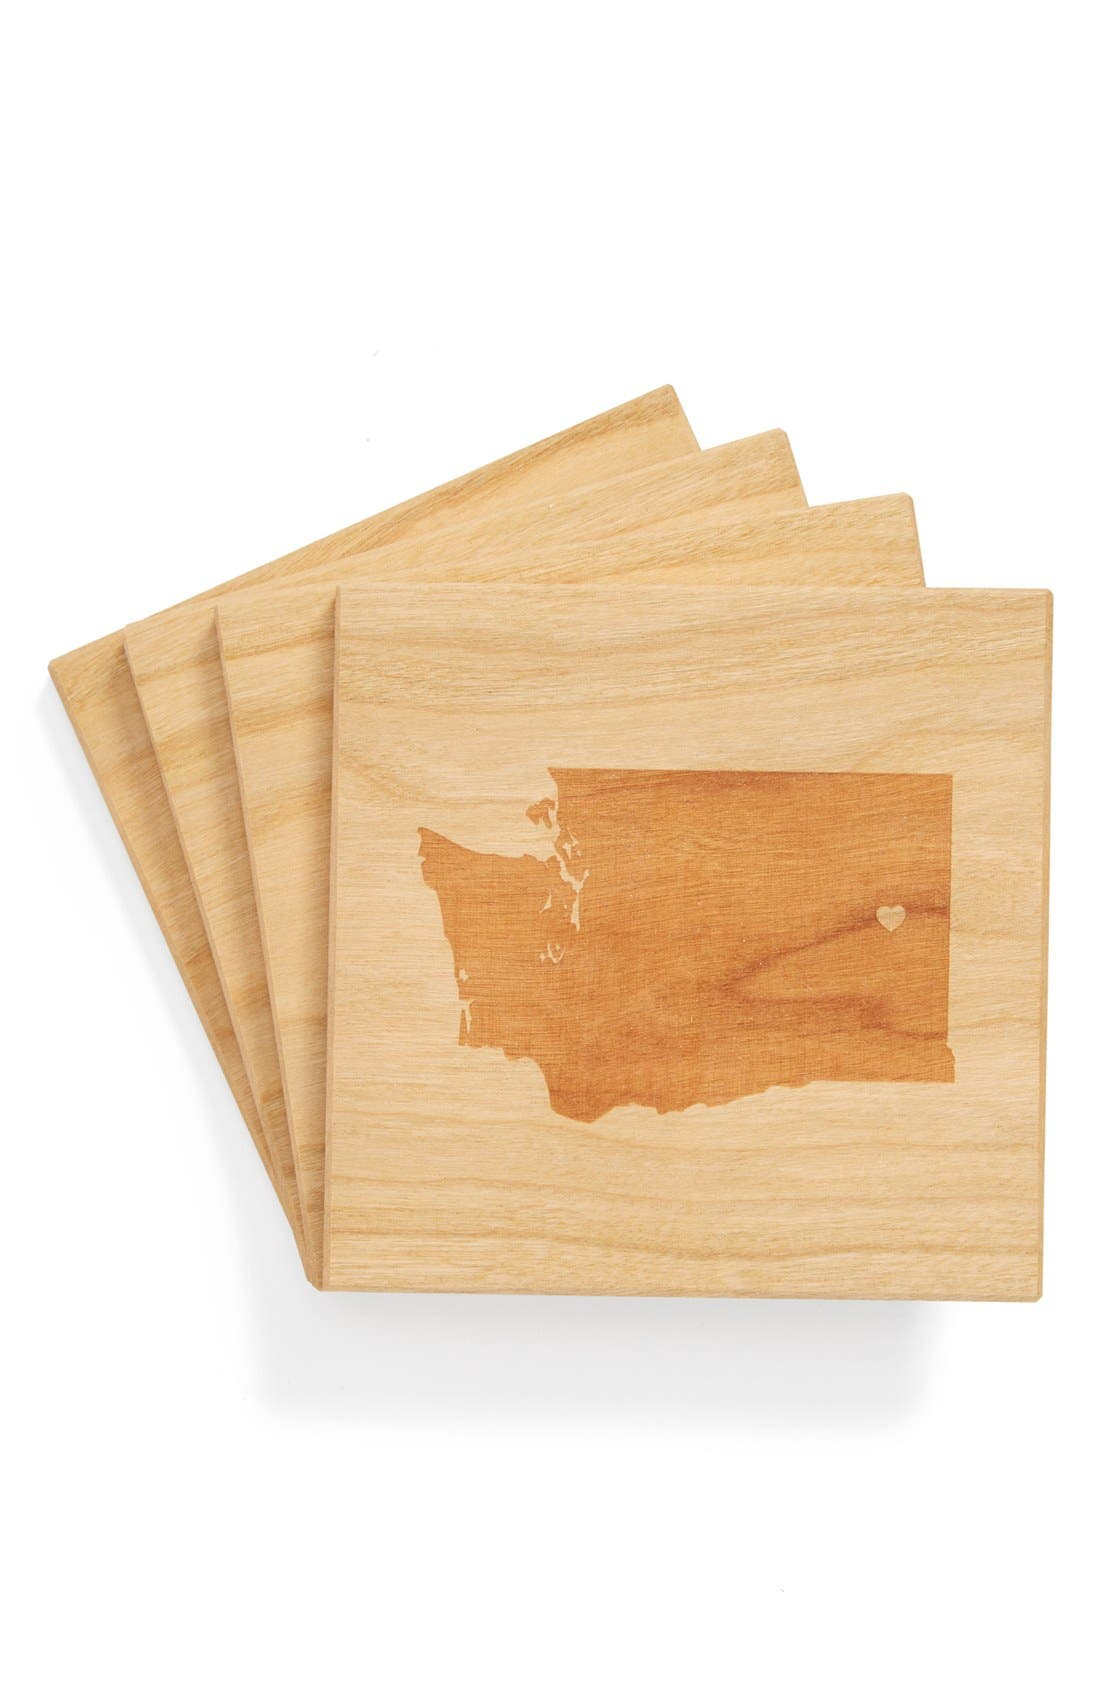 'State Silhouette' Coasters,                             Main thumbnail 22, color,